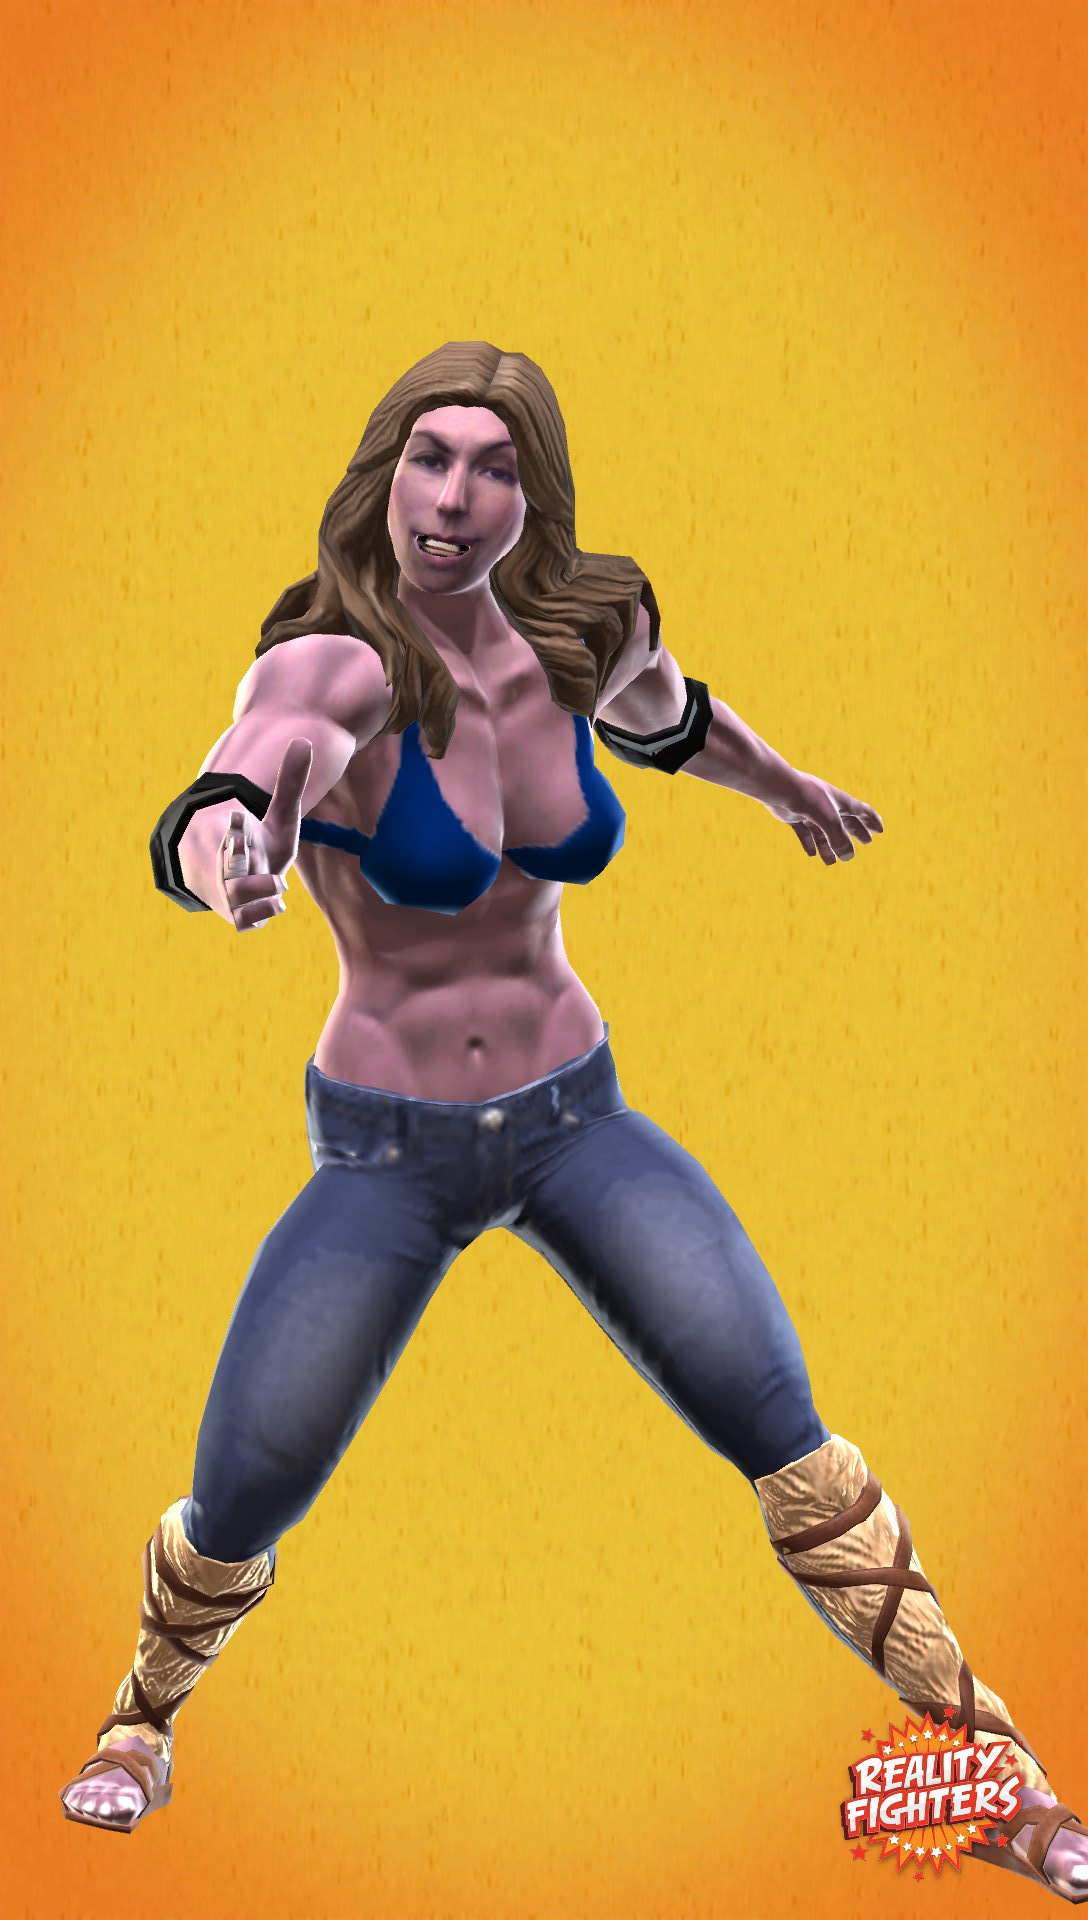 Reality Fighters Character Shot Weefz